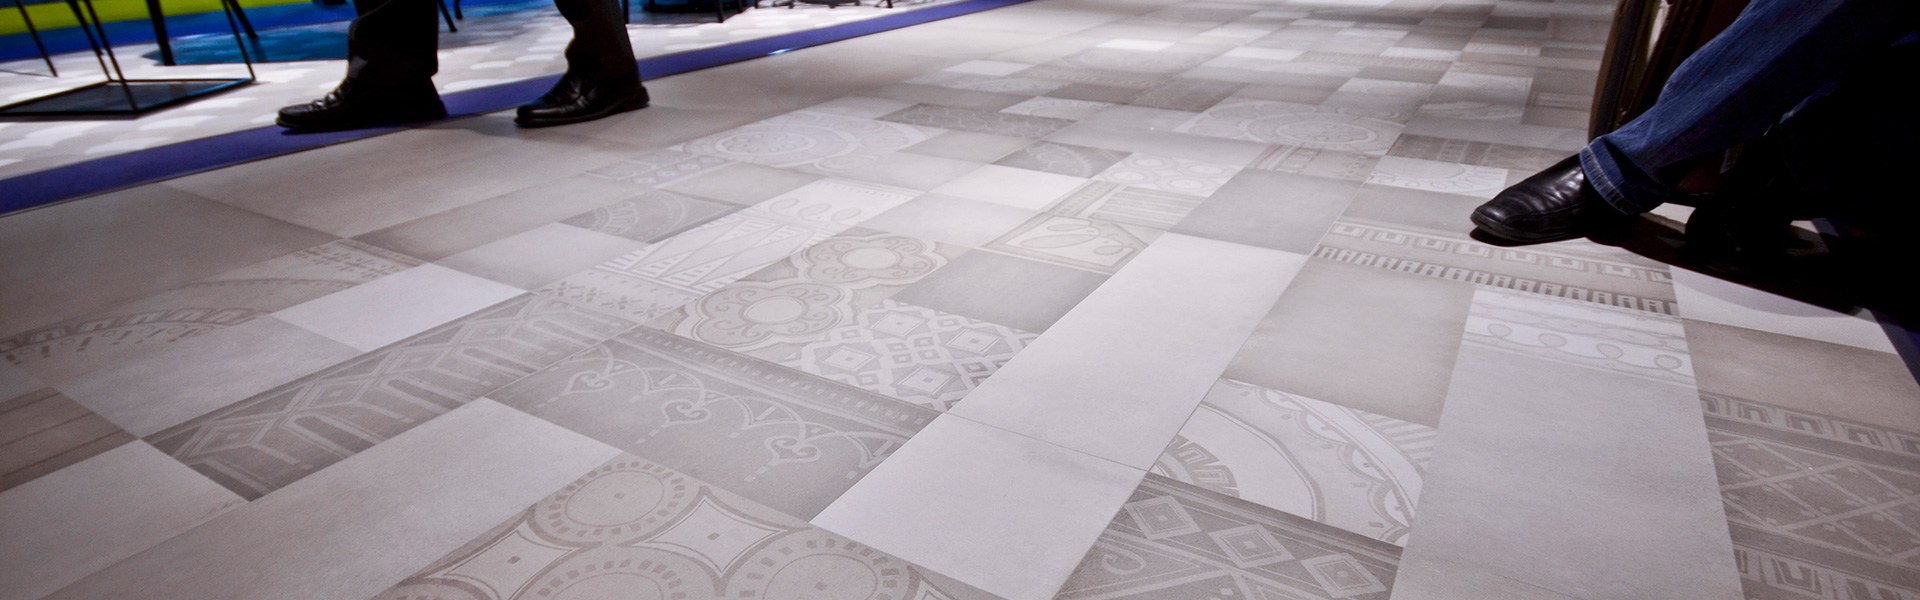 Vives floor tiles porcelain massena antislip 60x60 massena antislip porcelain floor tiles by vives azulejos y gres sa dailygadgetfo Image collections